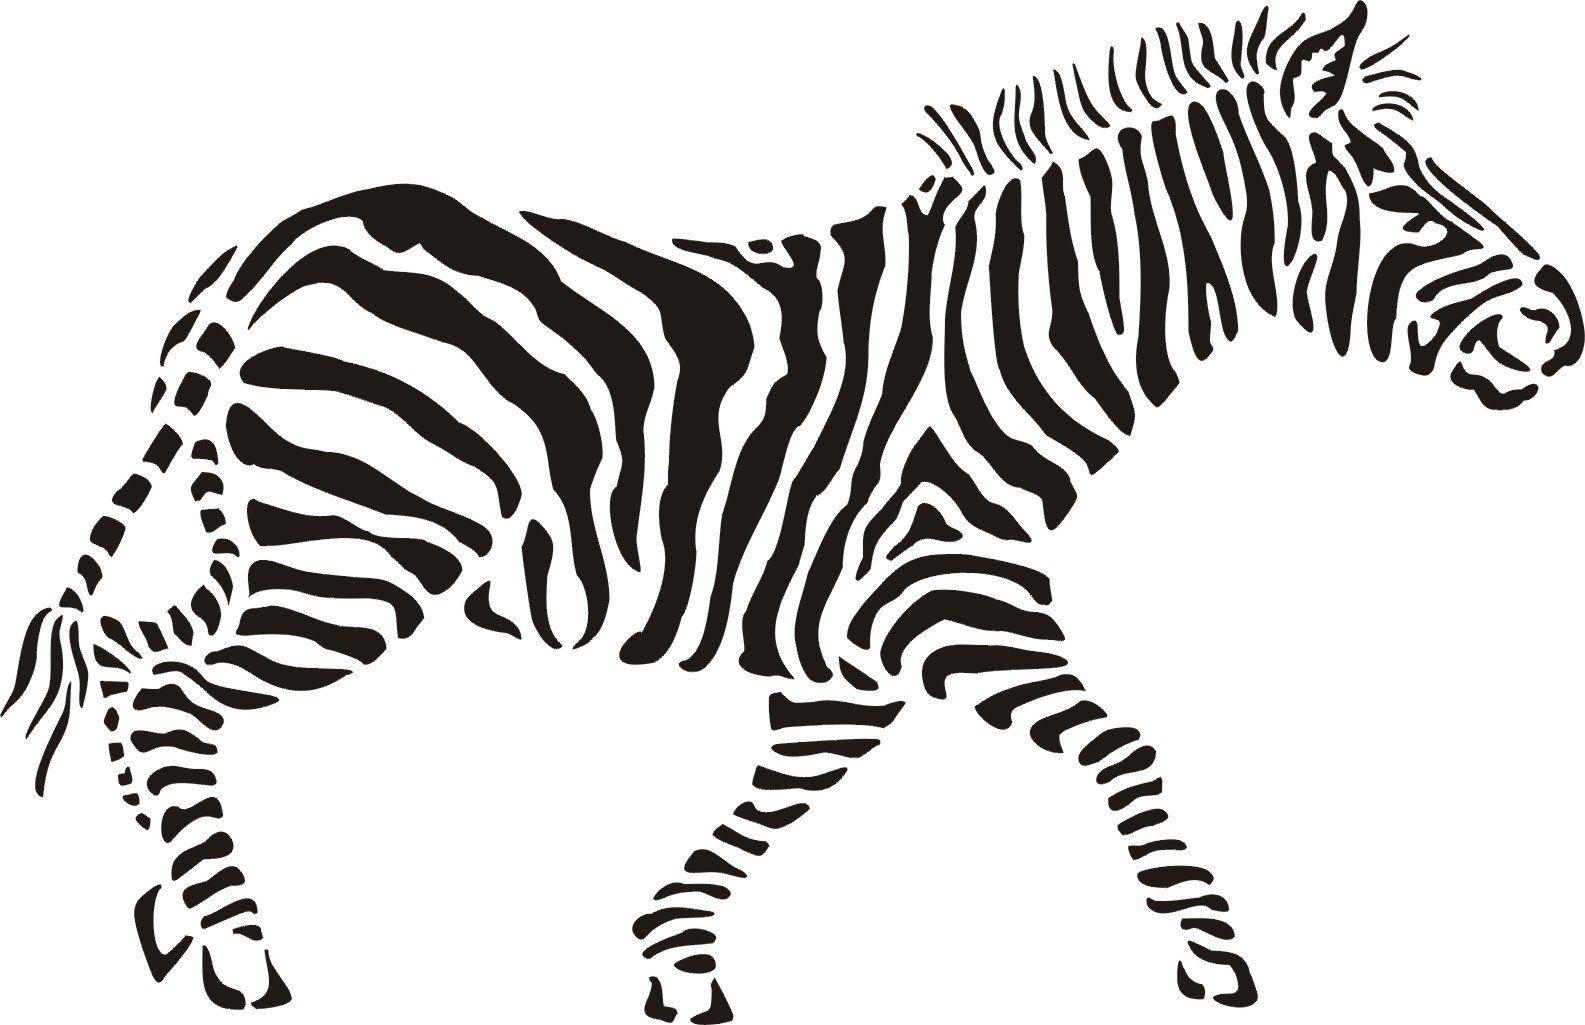 Zebra Stencil For Painting Walls